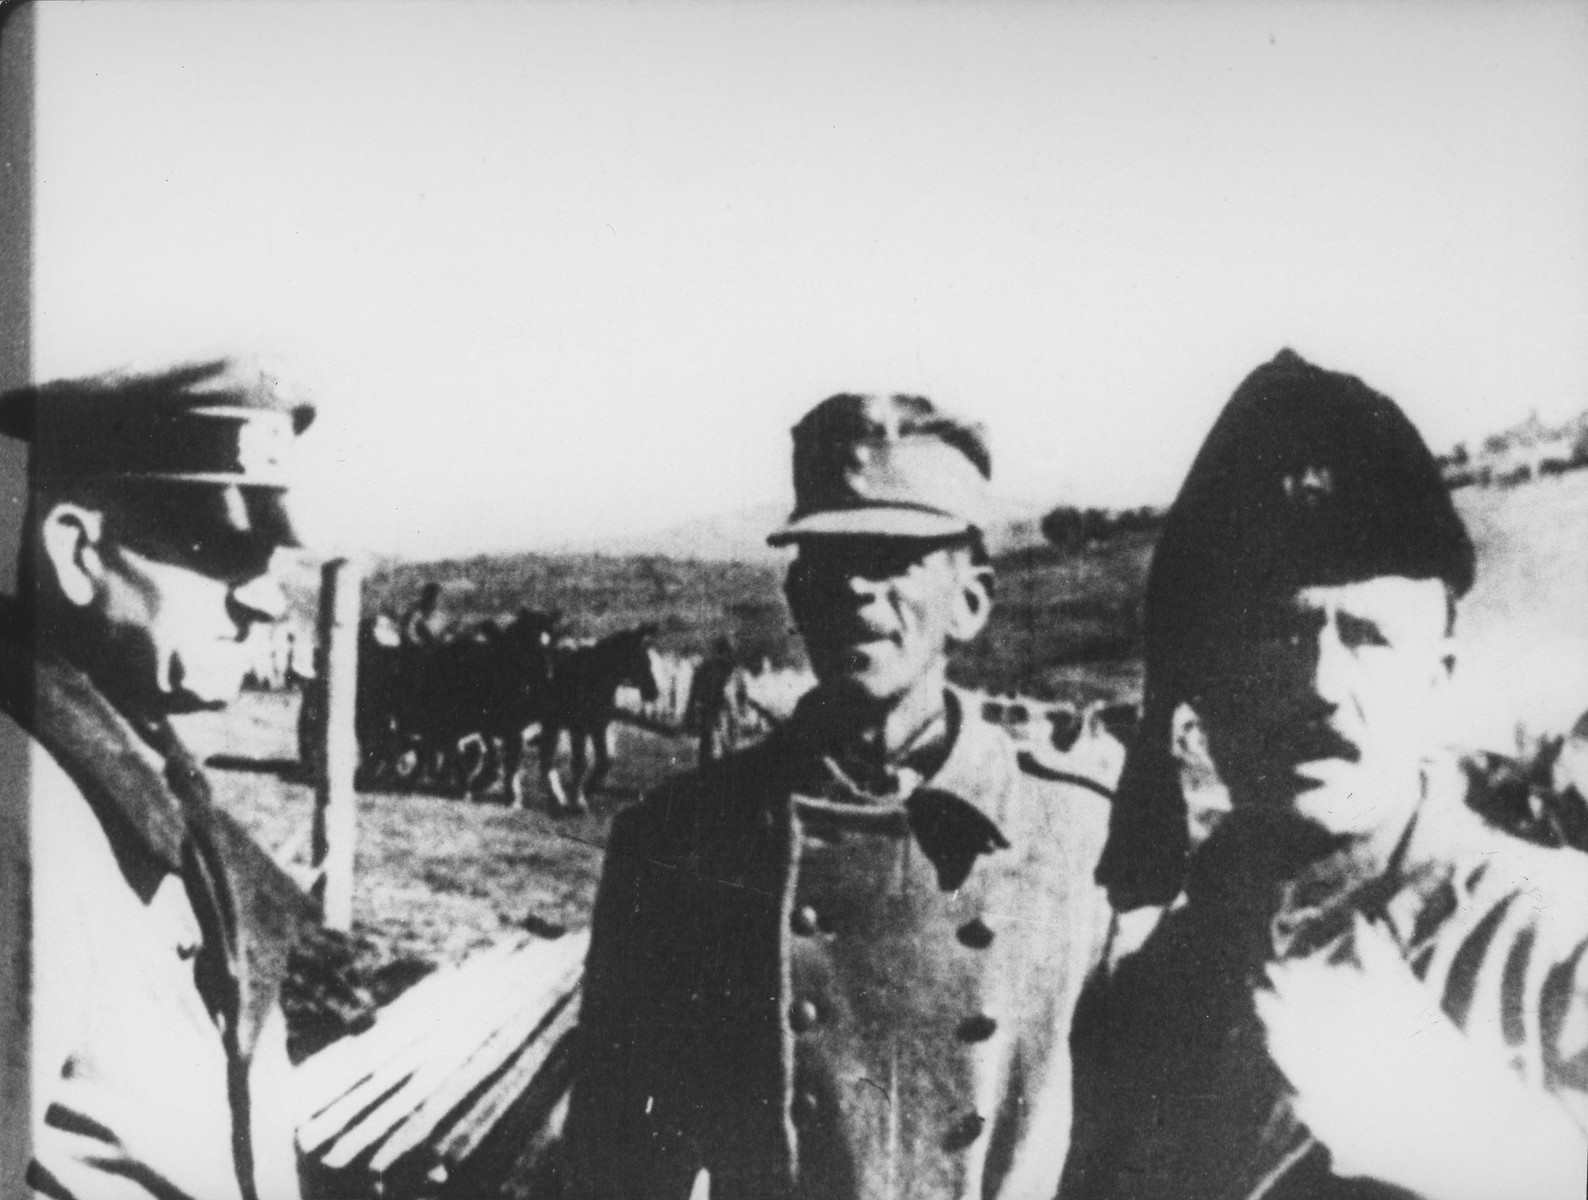 German General Major Friedrich Stahl stands alongside an Ustasa officer and Chetnik Commander Rade Radic in central Bosnia.